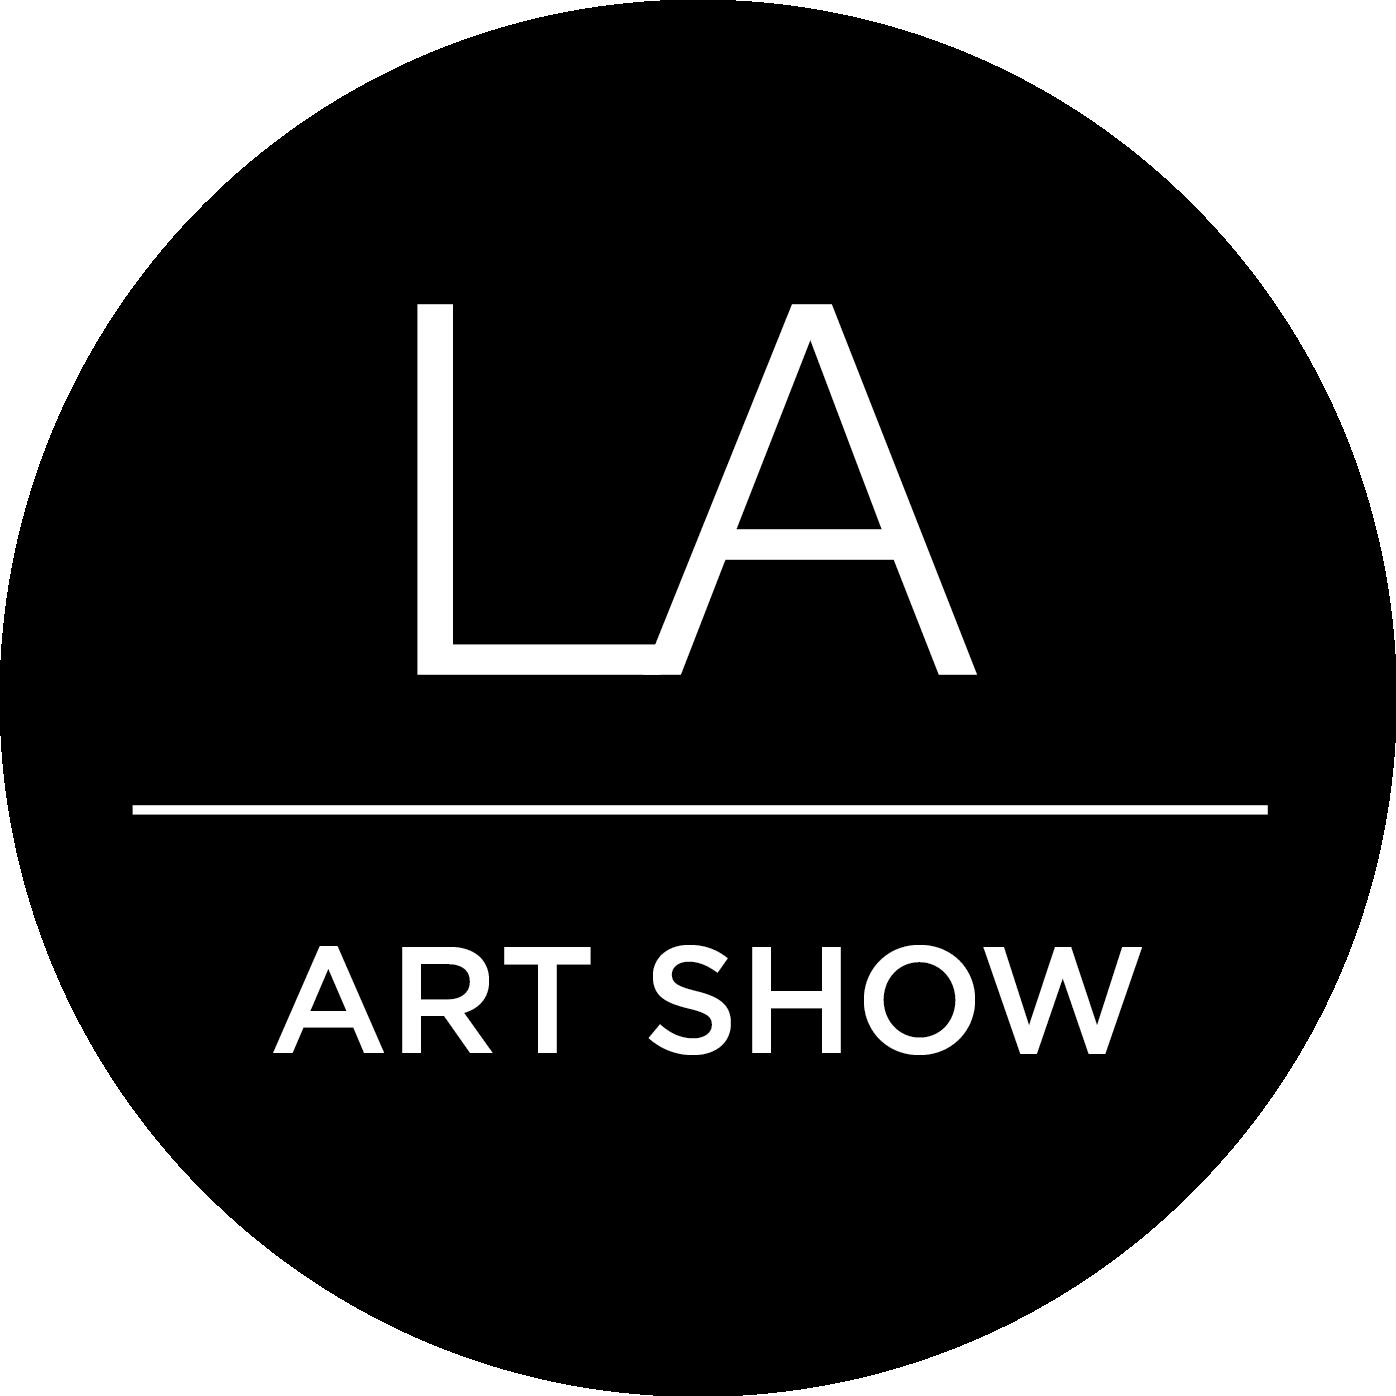 LA ART SHOW OPENING NIGHT